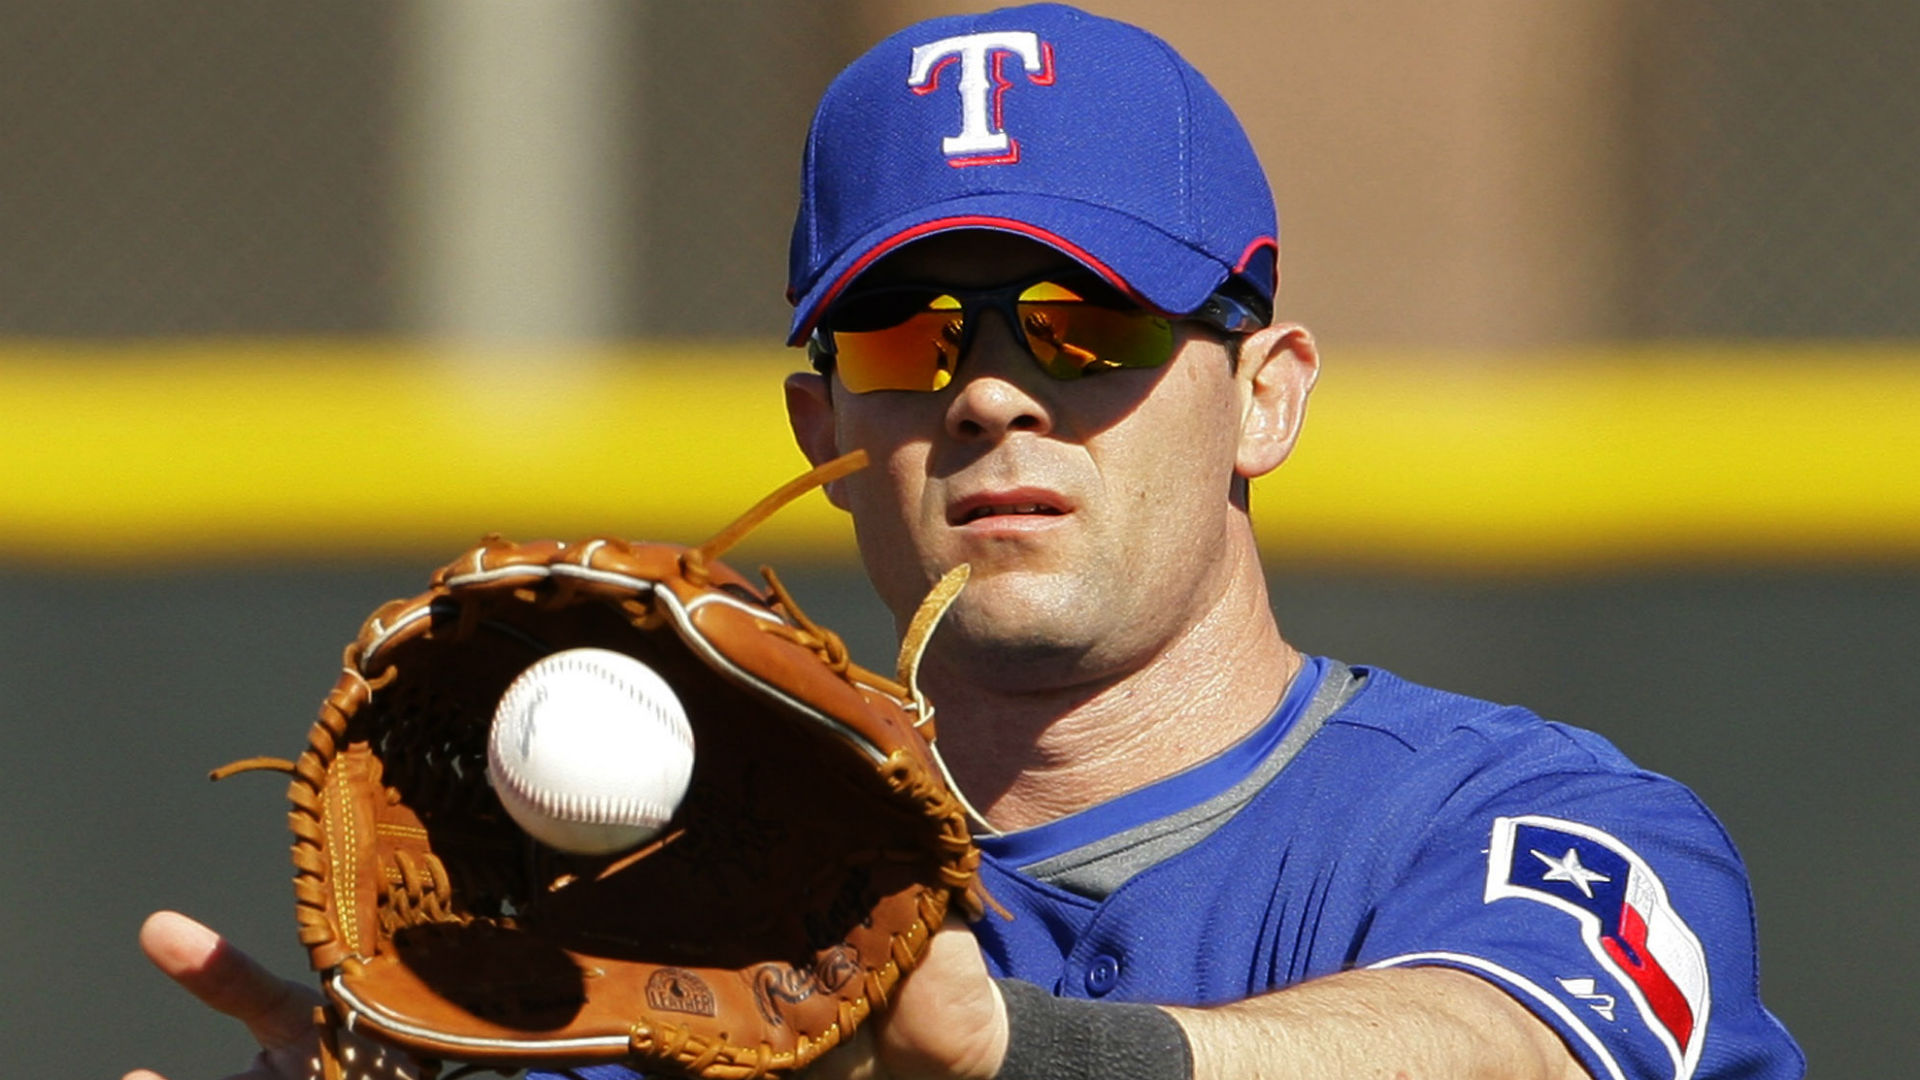 Fantasy Baseball Podcast: The Michael Young Episode